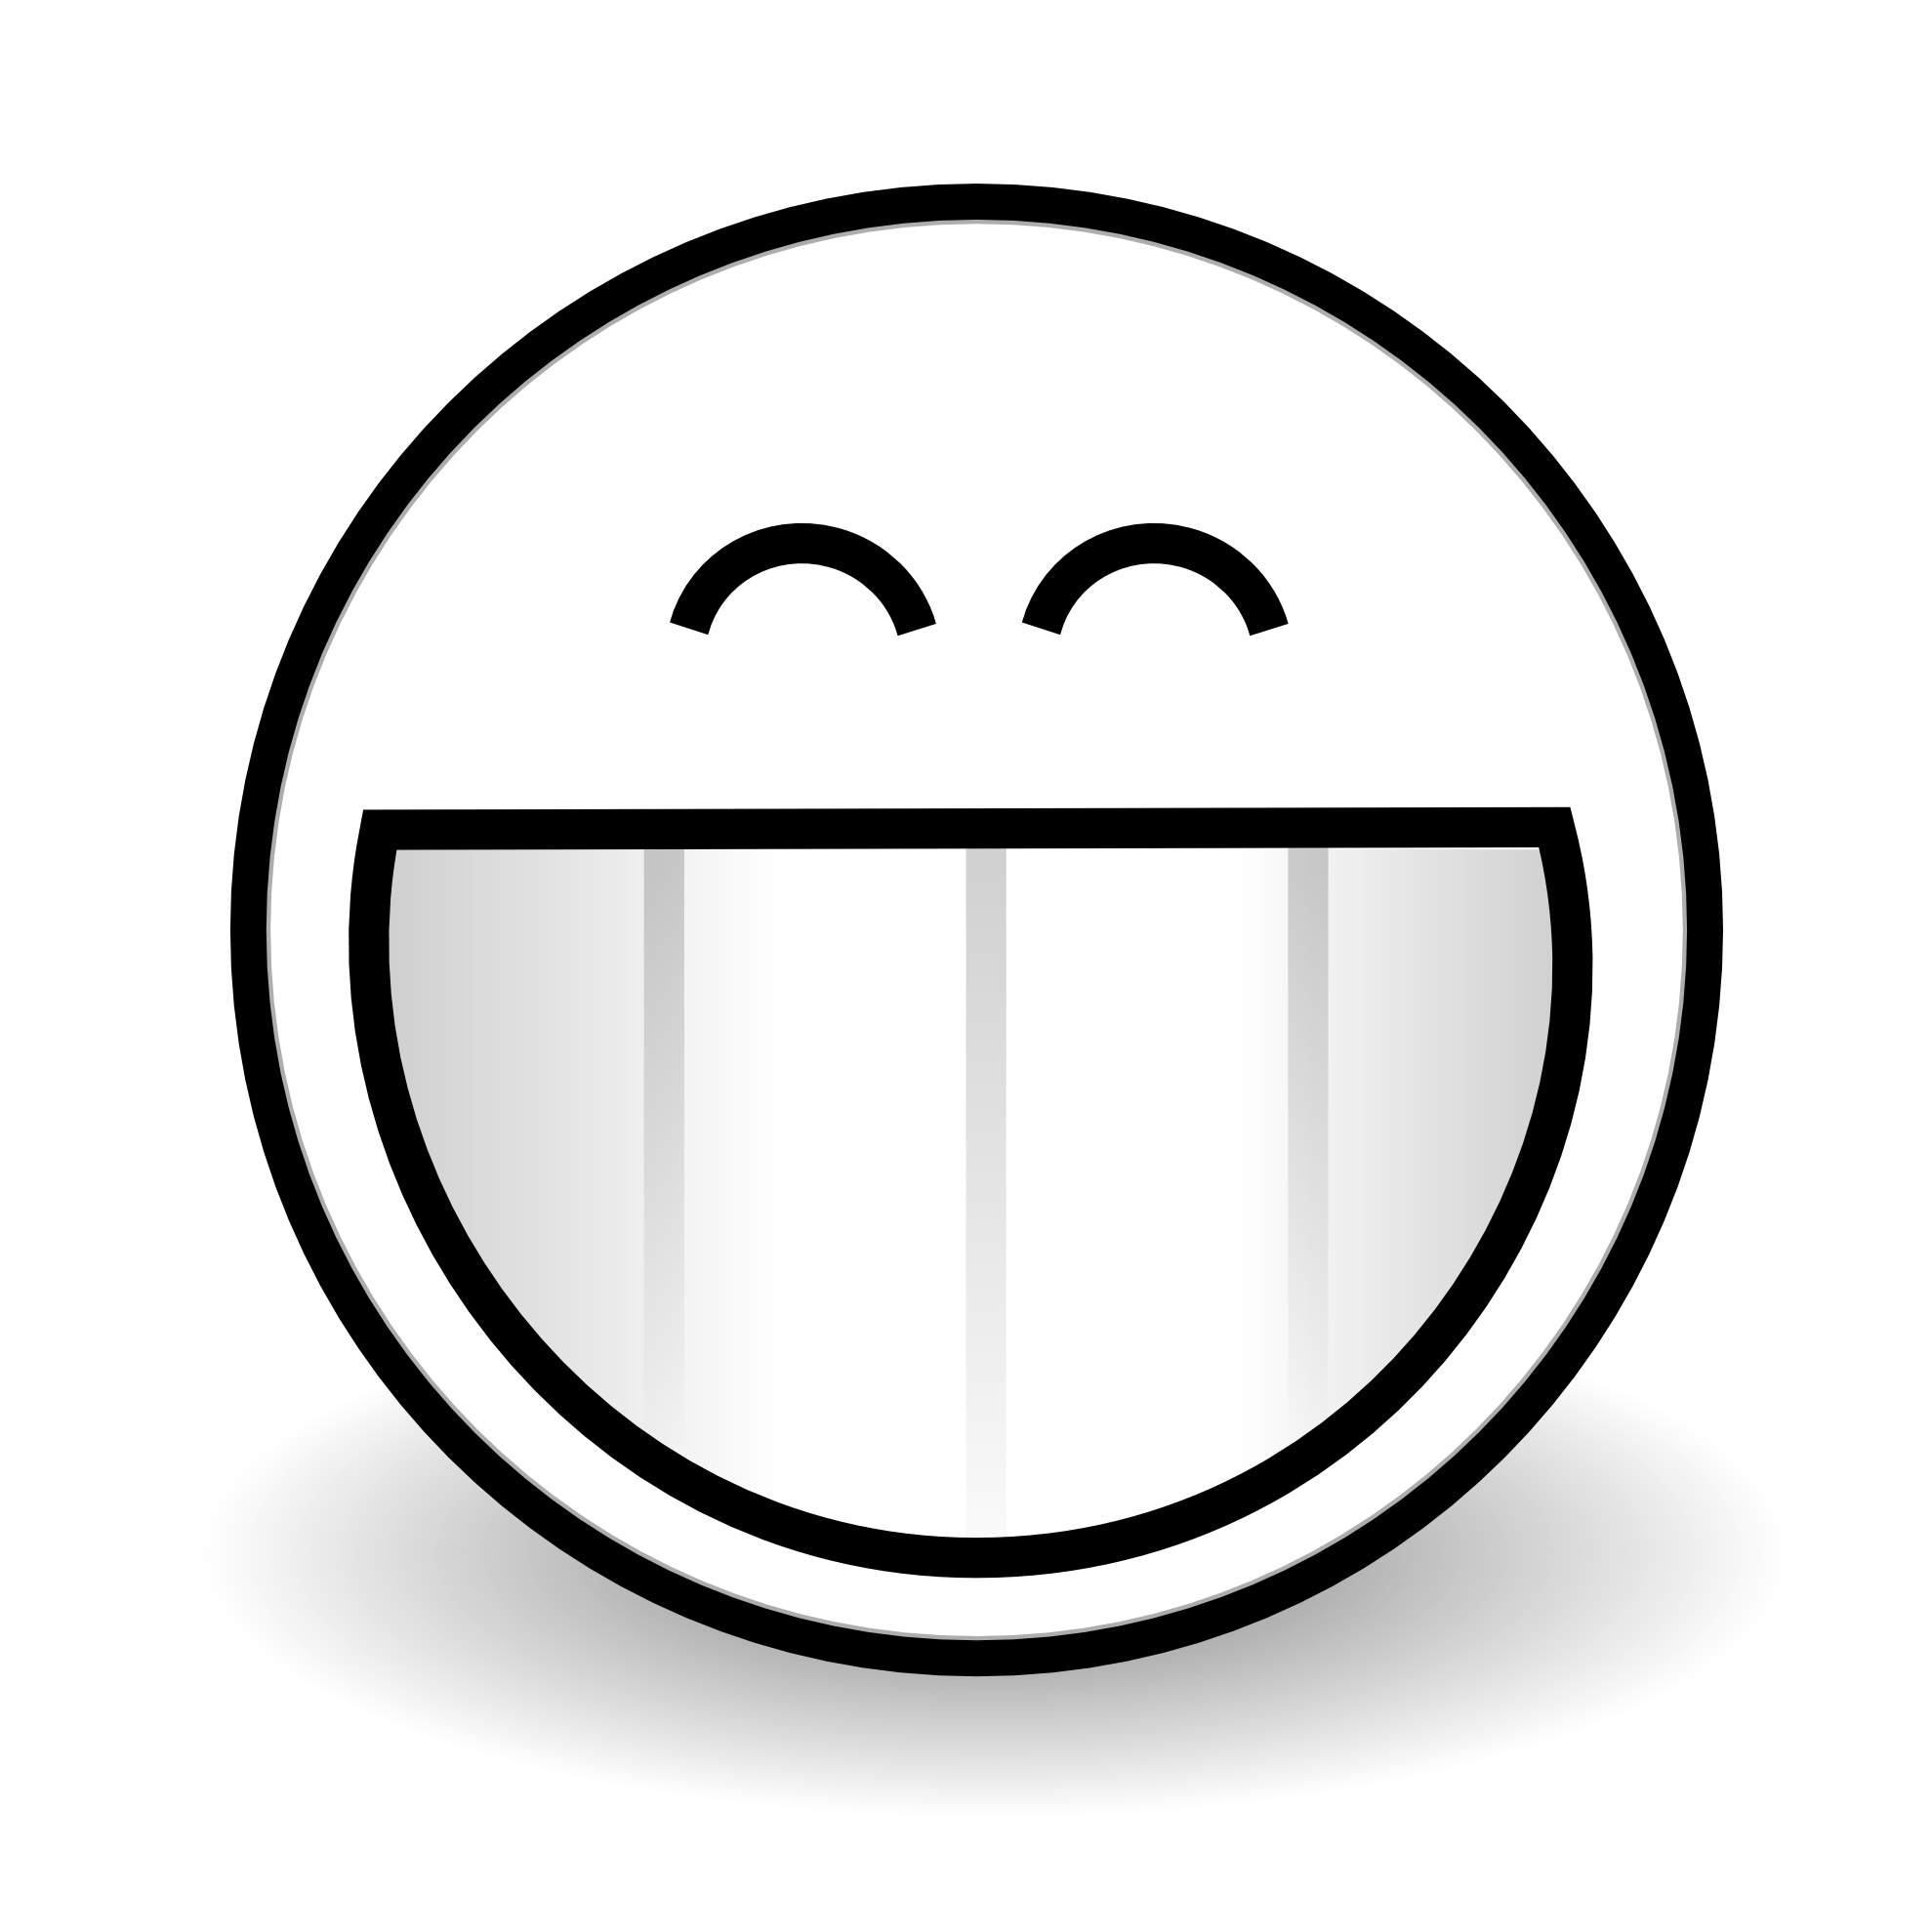 Smiley face black and white clipart free happy faces black and white - PNG Happy Face Black And White